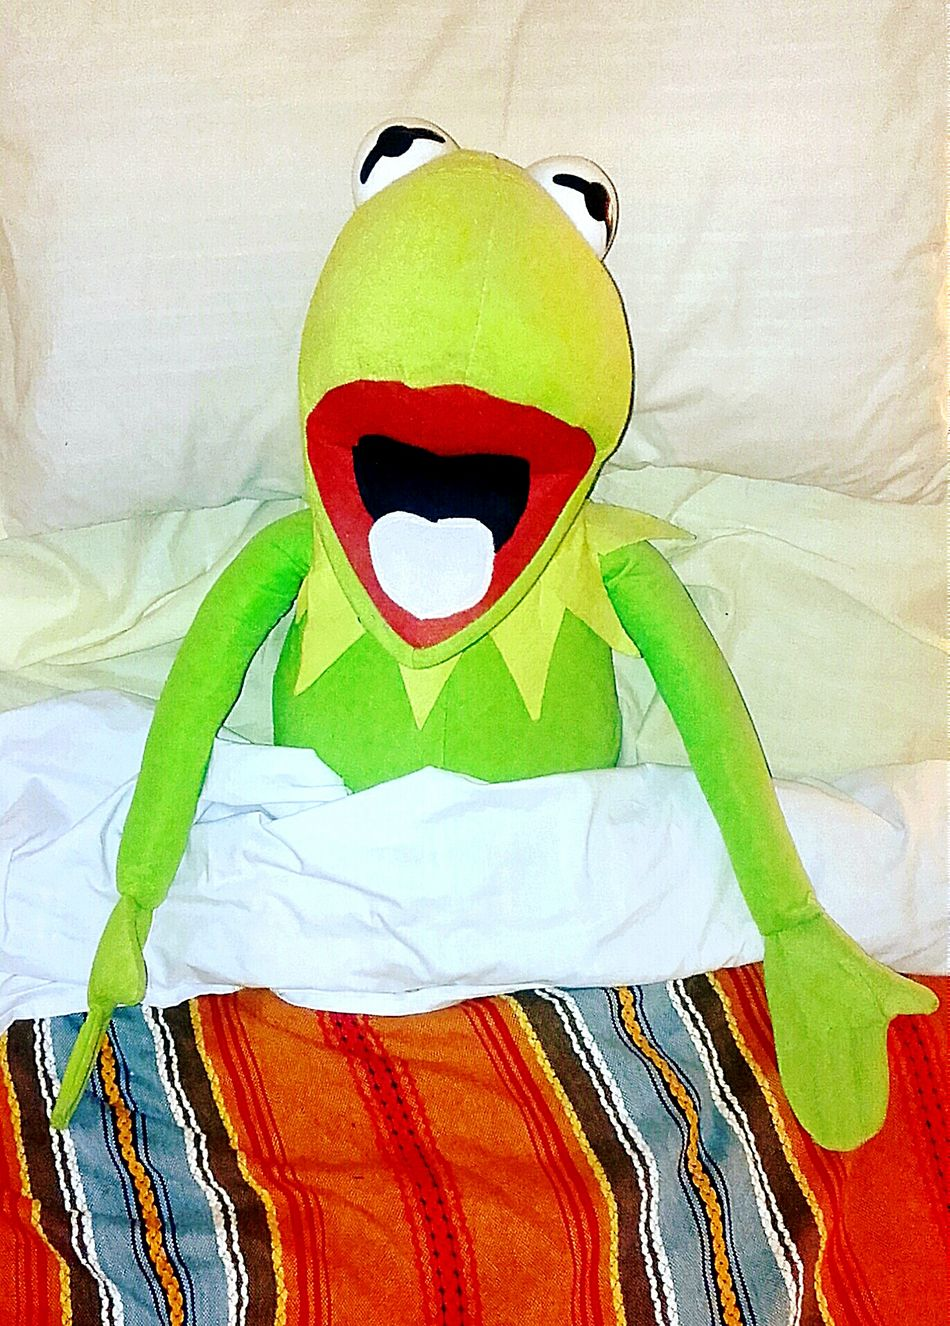 Who's Been Sleeping In My Bed? Miss Piggy Loves Kermie Kermit Kermit Rules!👊 Kermitthefrog Kermit The Frog Kermie I'm Feeling A Bit Green Check This Out Laying In Bed In Bed Lying In Bed I Want Breakfast In Bed Who Woke Me? Bed Time Funnypictures Funny Pics Funny Pictures Don't Worry, Be Happy Don't Worry Be Happy